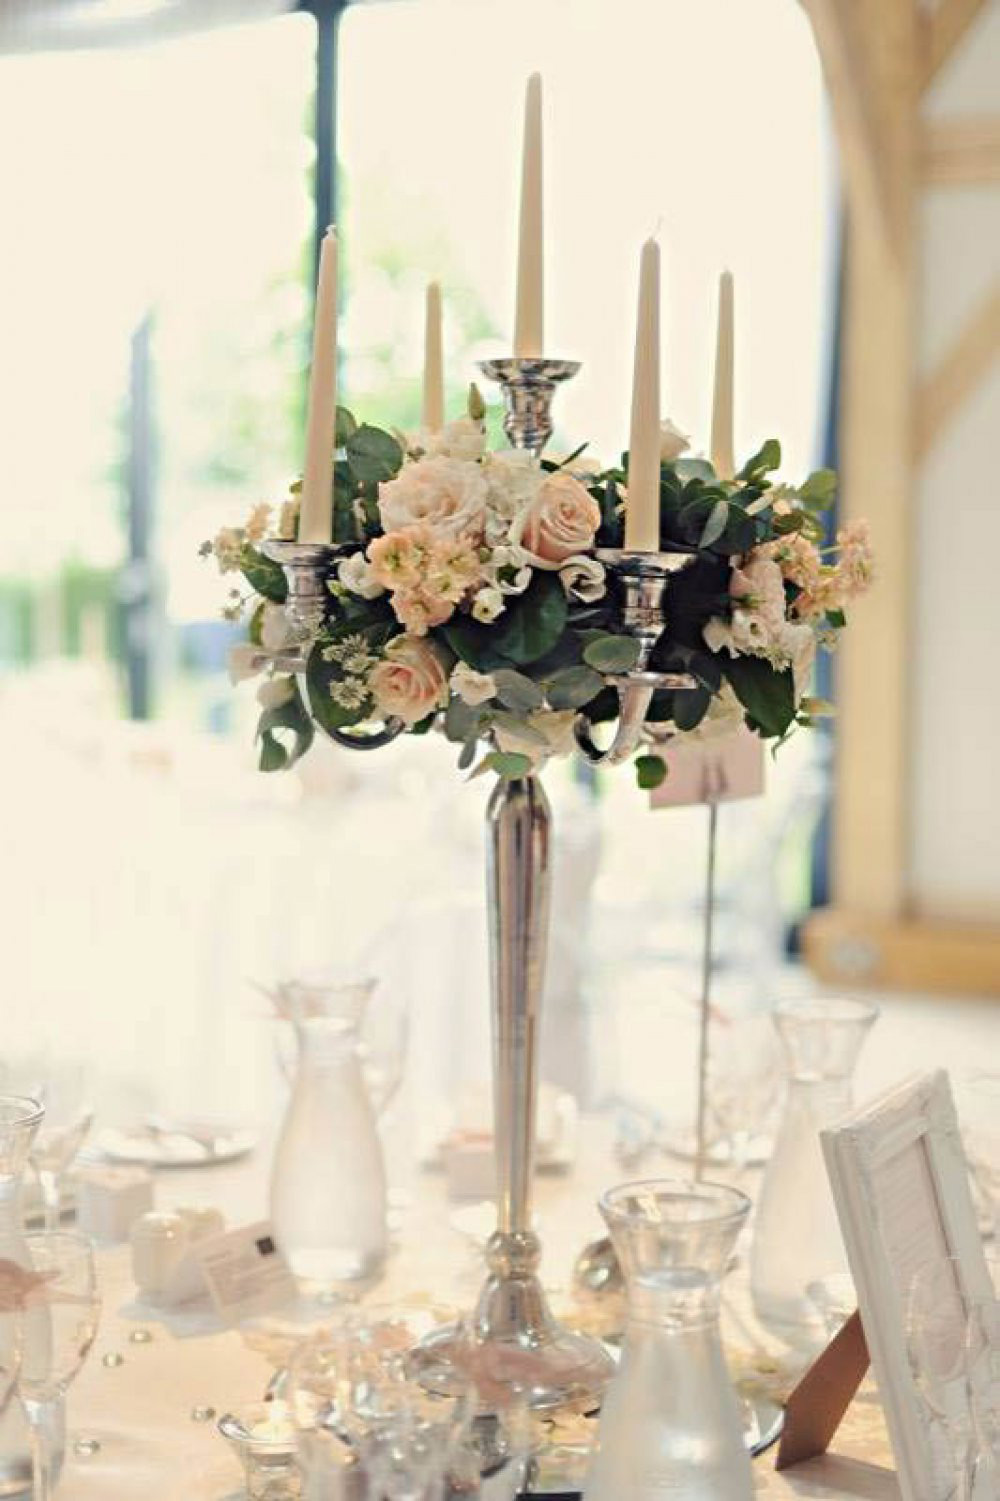 Stunning table centres